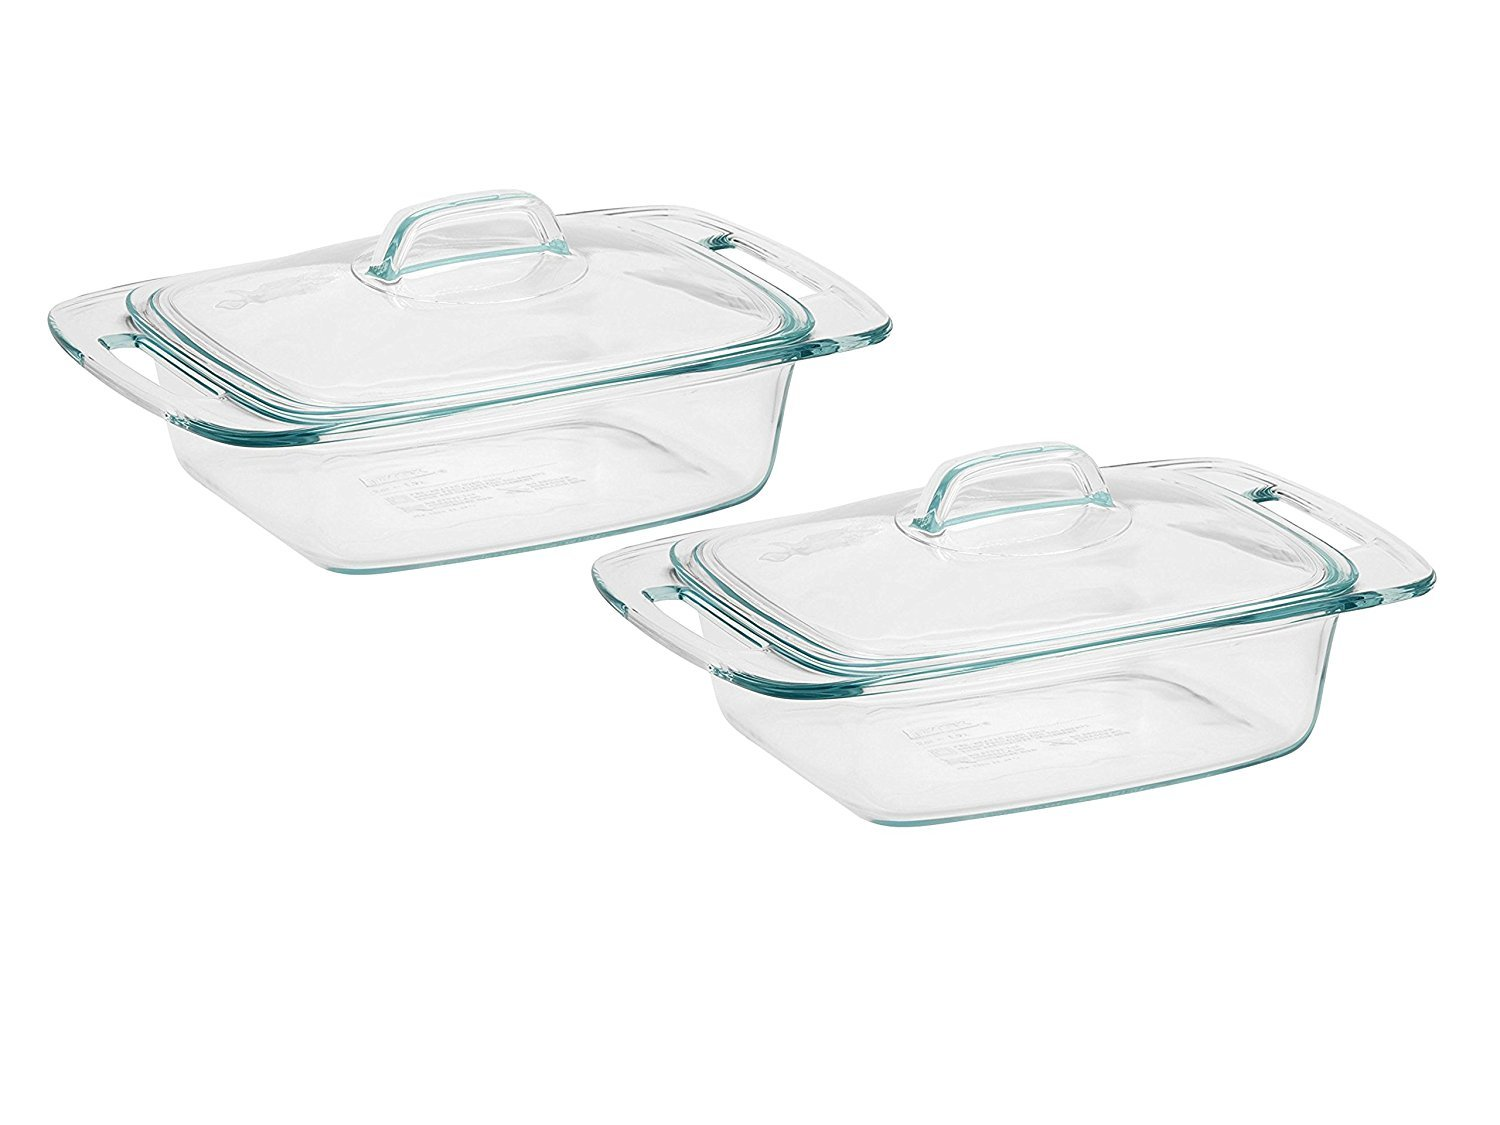 Set of 2 Pyrex Easy Grab 2-qt Casserole bundled by Maven Gifts